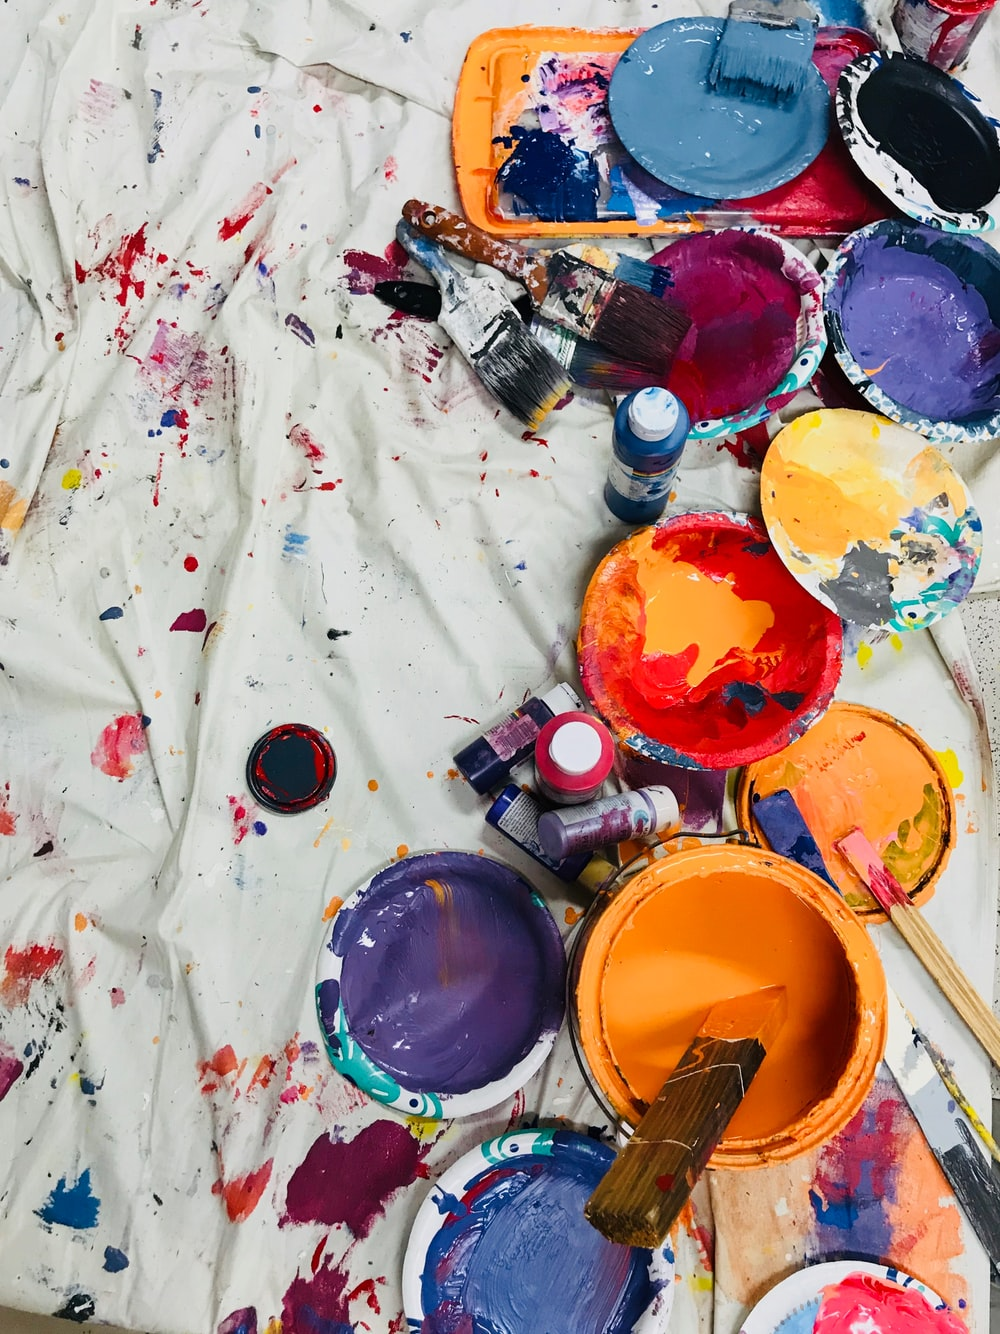 assorted-color paints and paintbrushes on white tarp